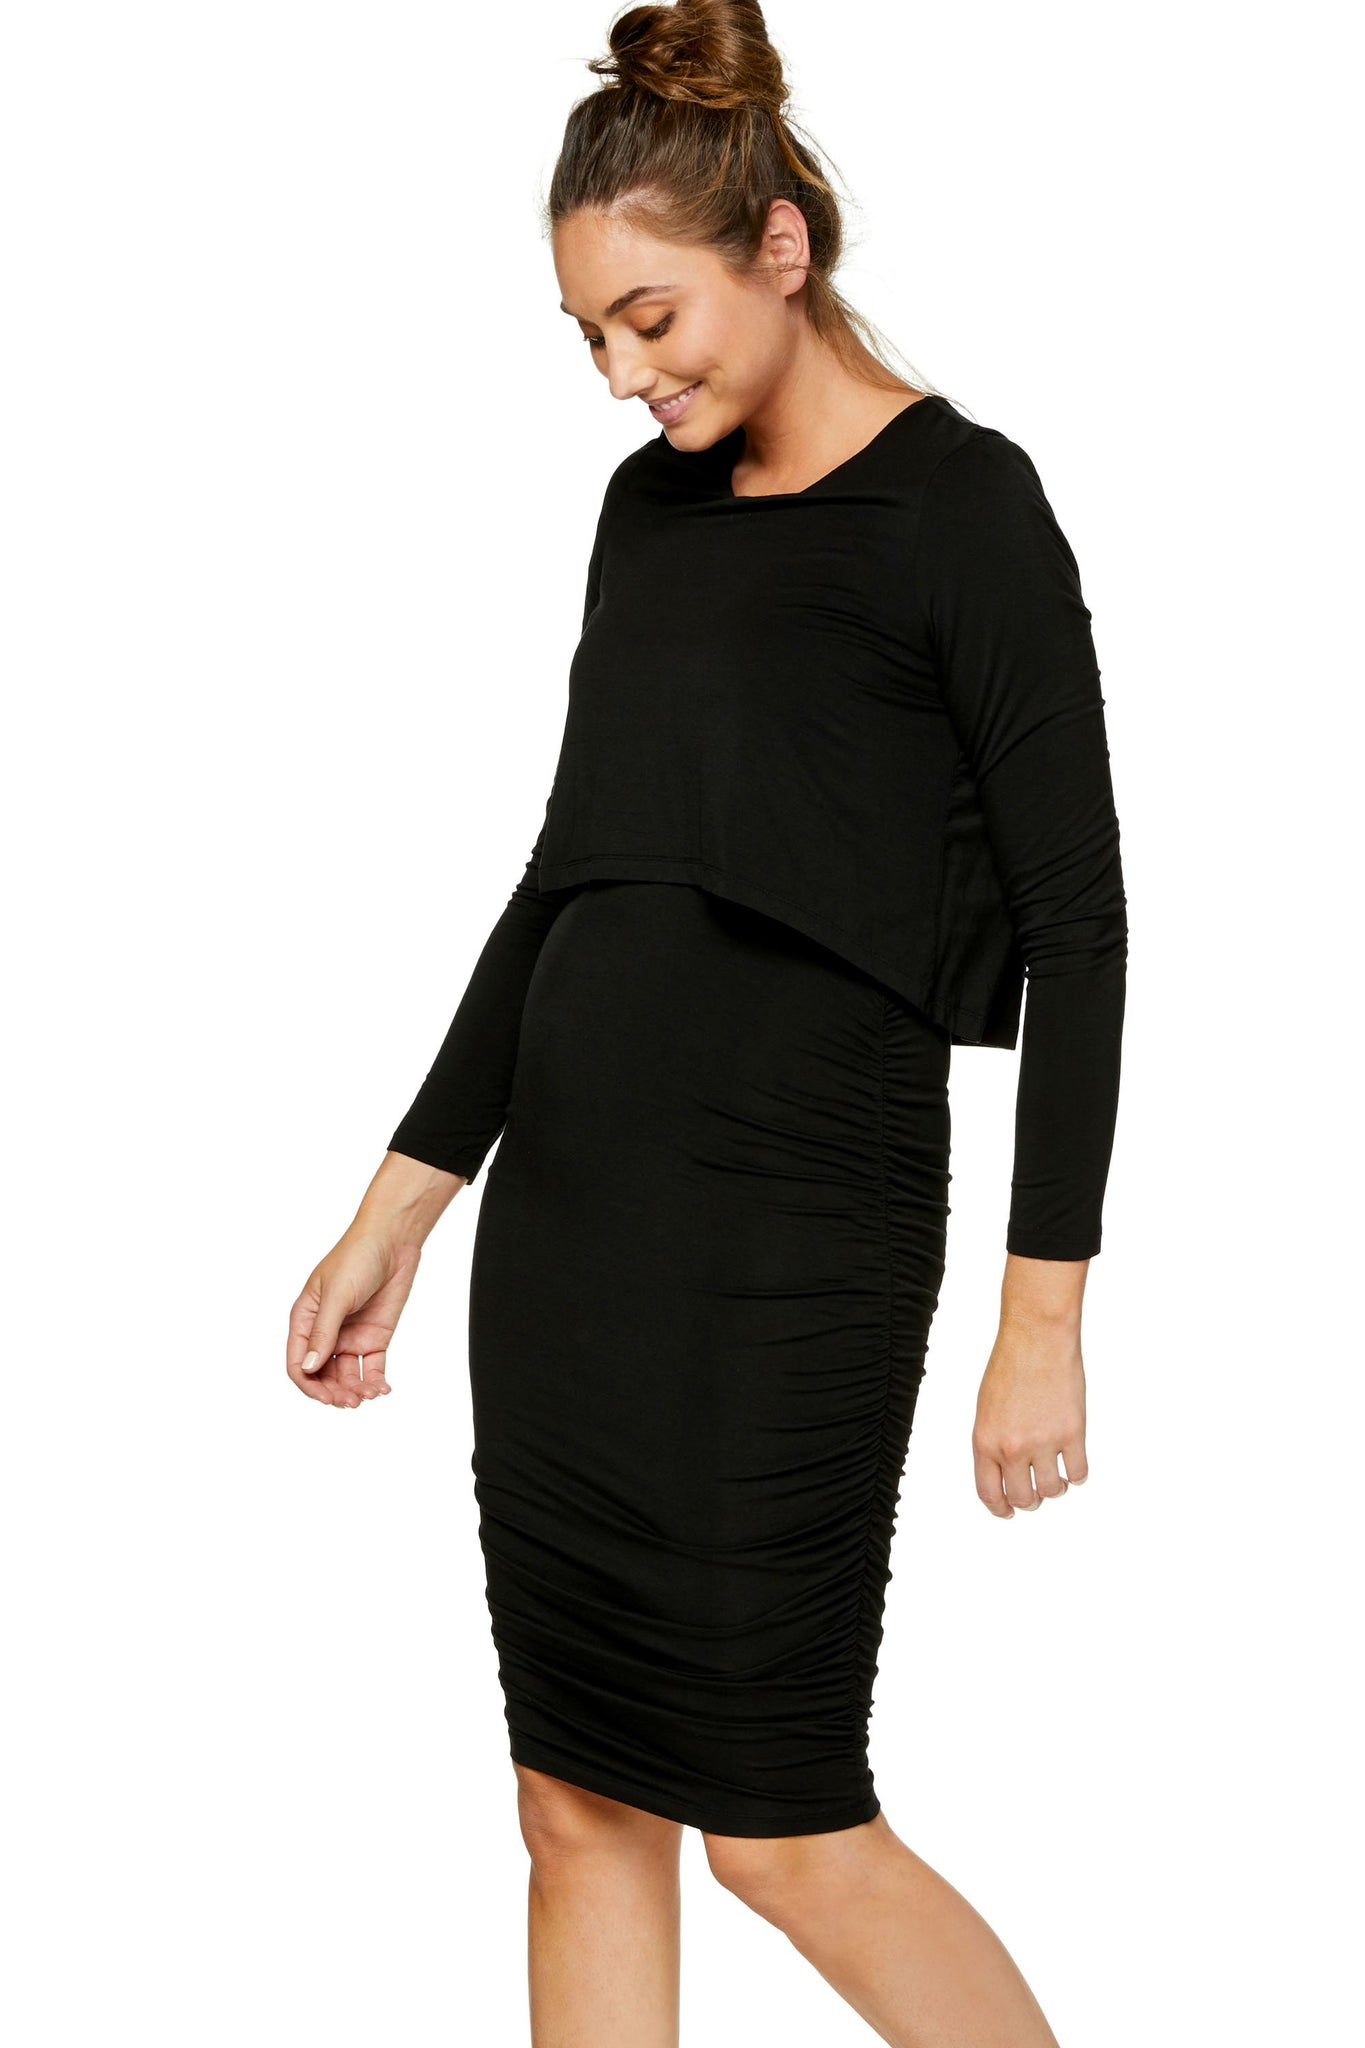 Long sleeve maternity and nursing dress - Black 6